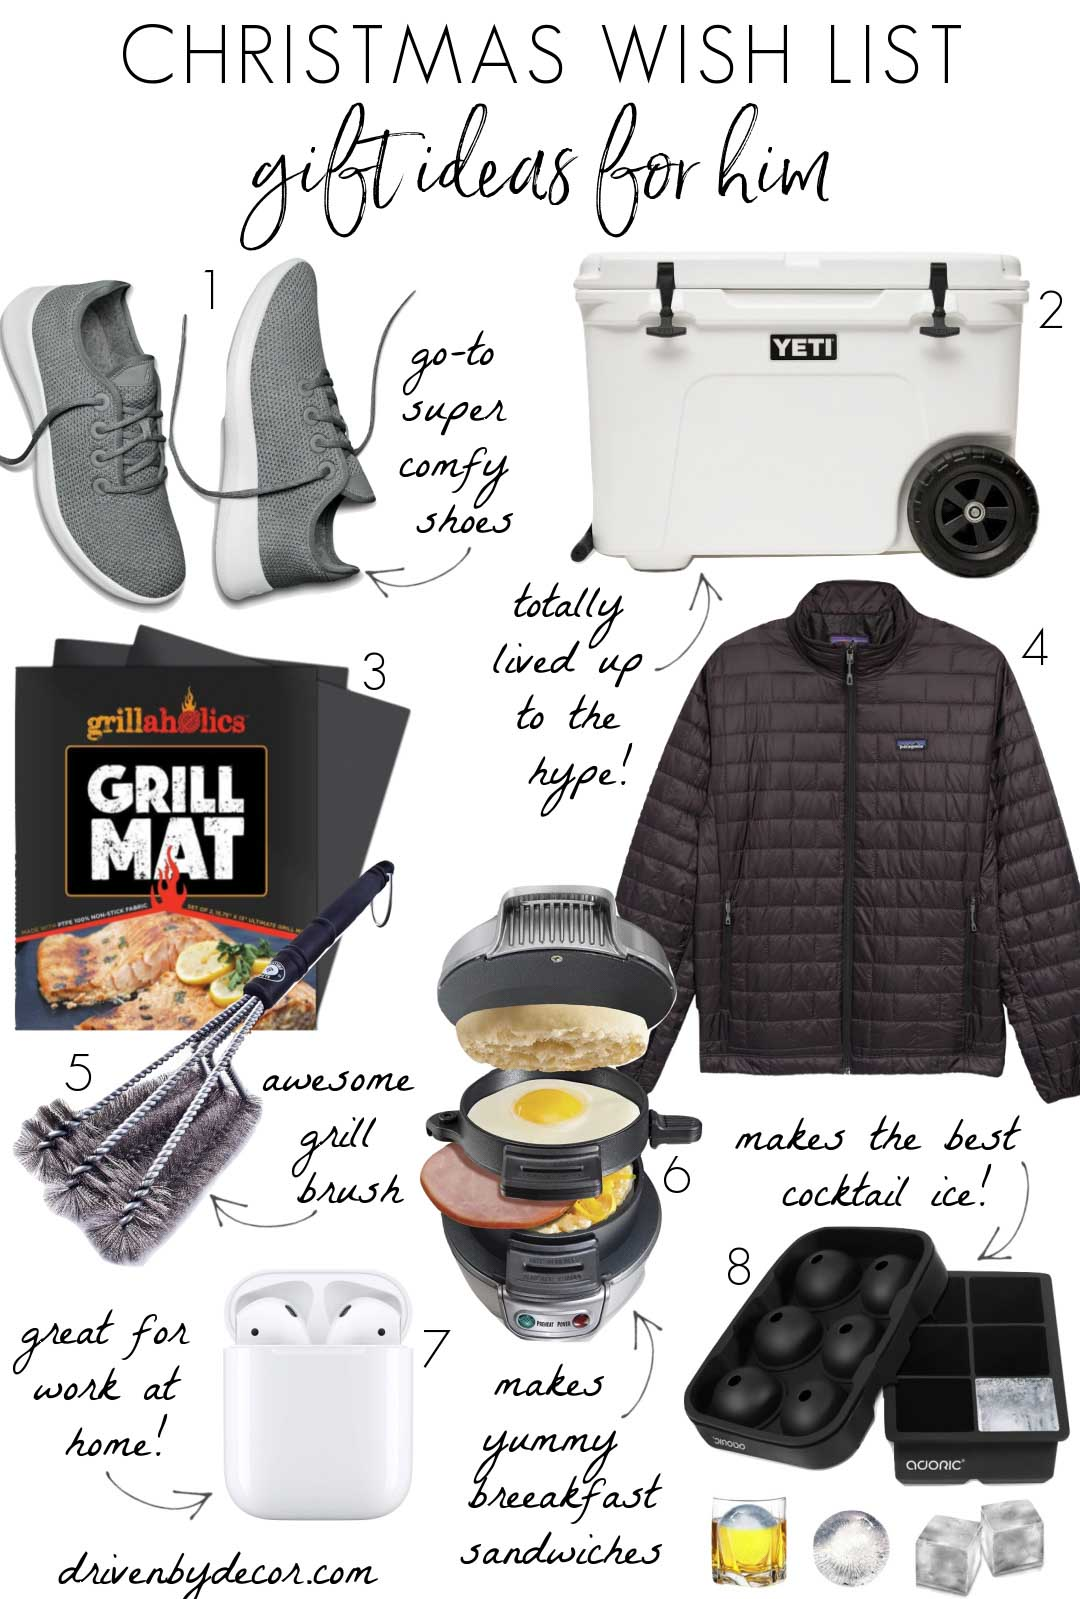 The best Christmas gift ideas for him!